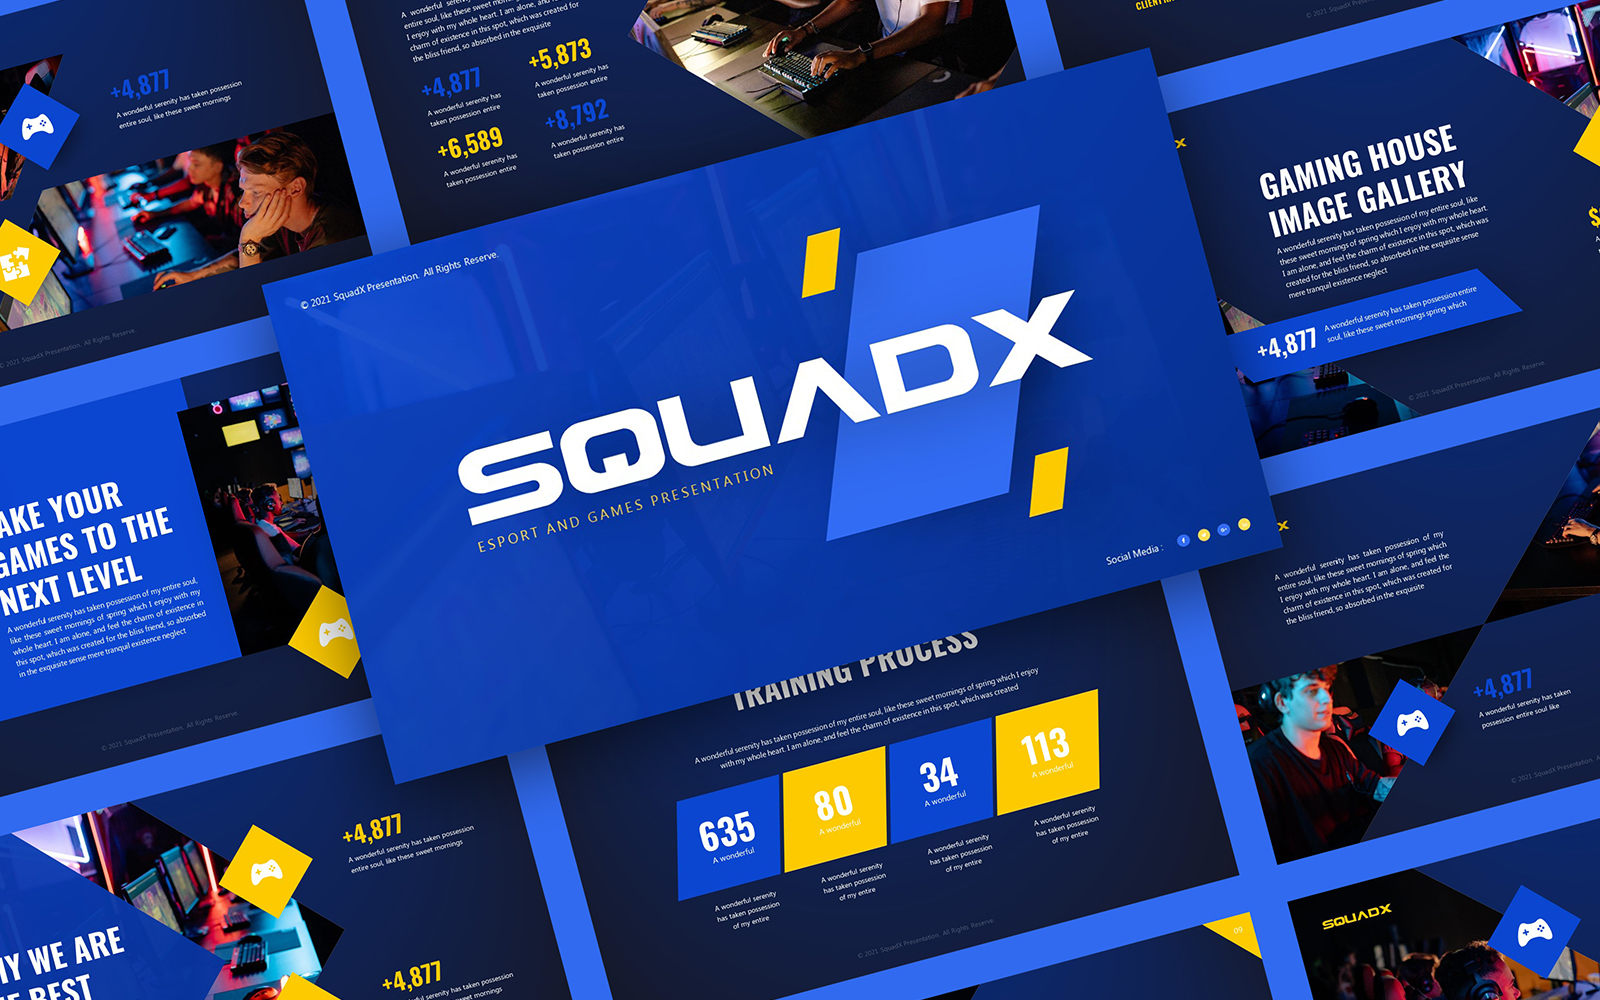 SquadX - Esport and Games PowerPoint Template